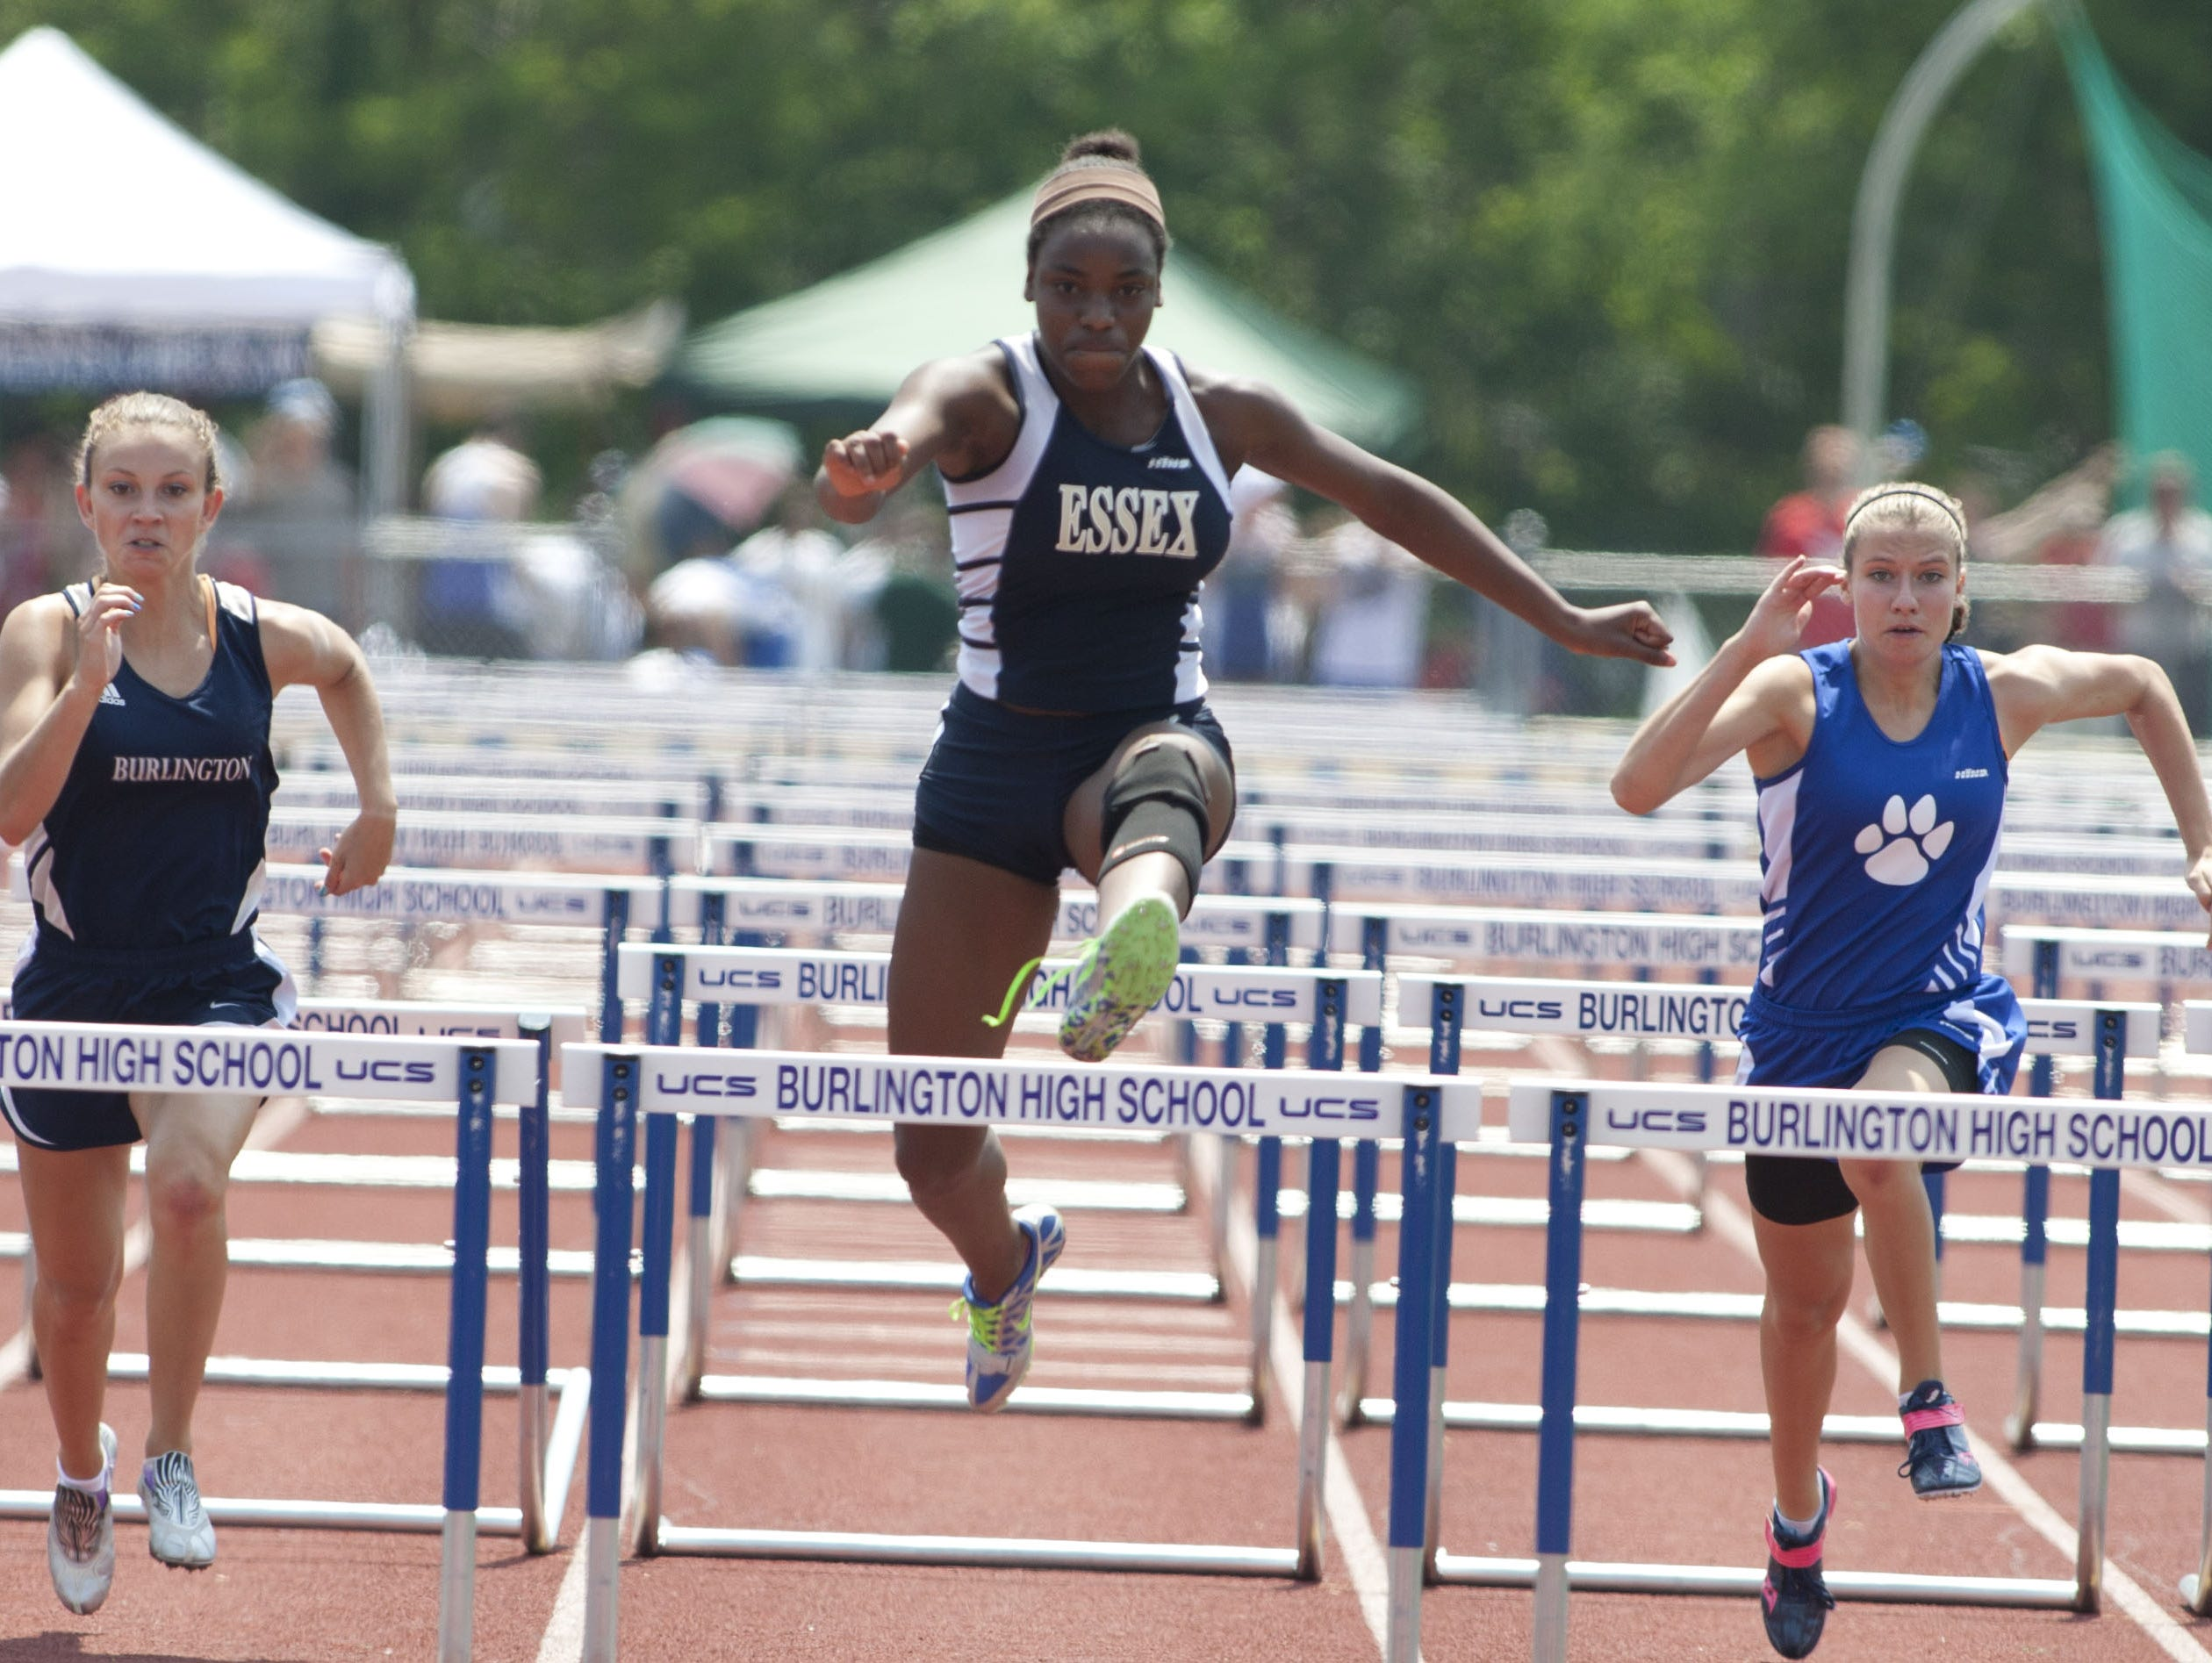 The Essex High School girls track and field program produces a bevy of high-point scorers and individual state champions, like in the 100 hurdles, which Mariah Neverett, center, won at the 2013 Division I state meet.